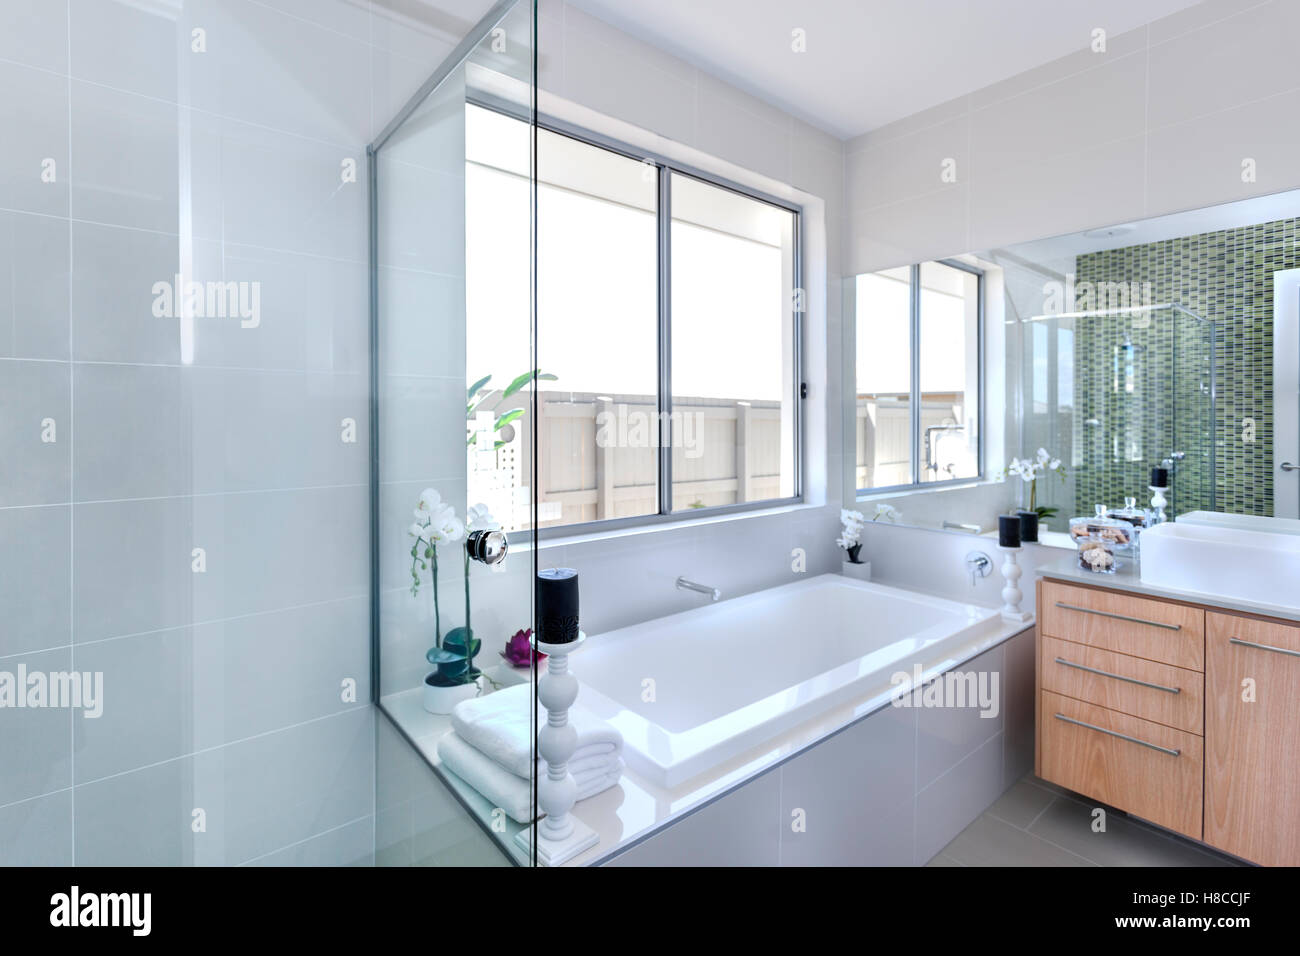 White Bathtub Stock Photos & White Bathtub Stock Images - Alamy